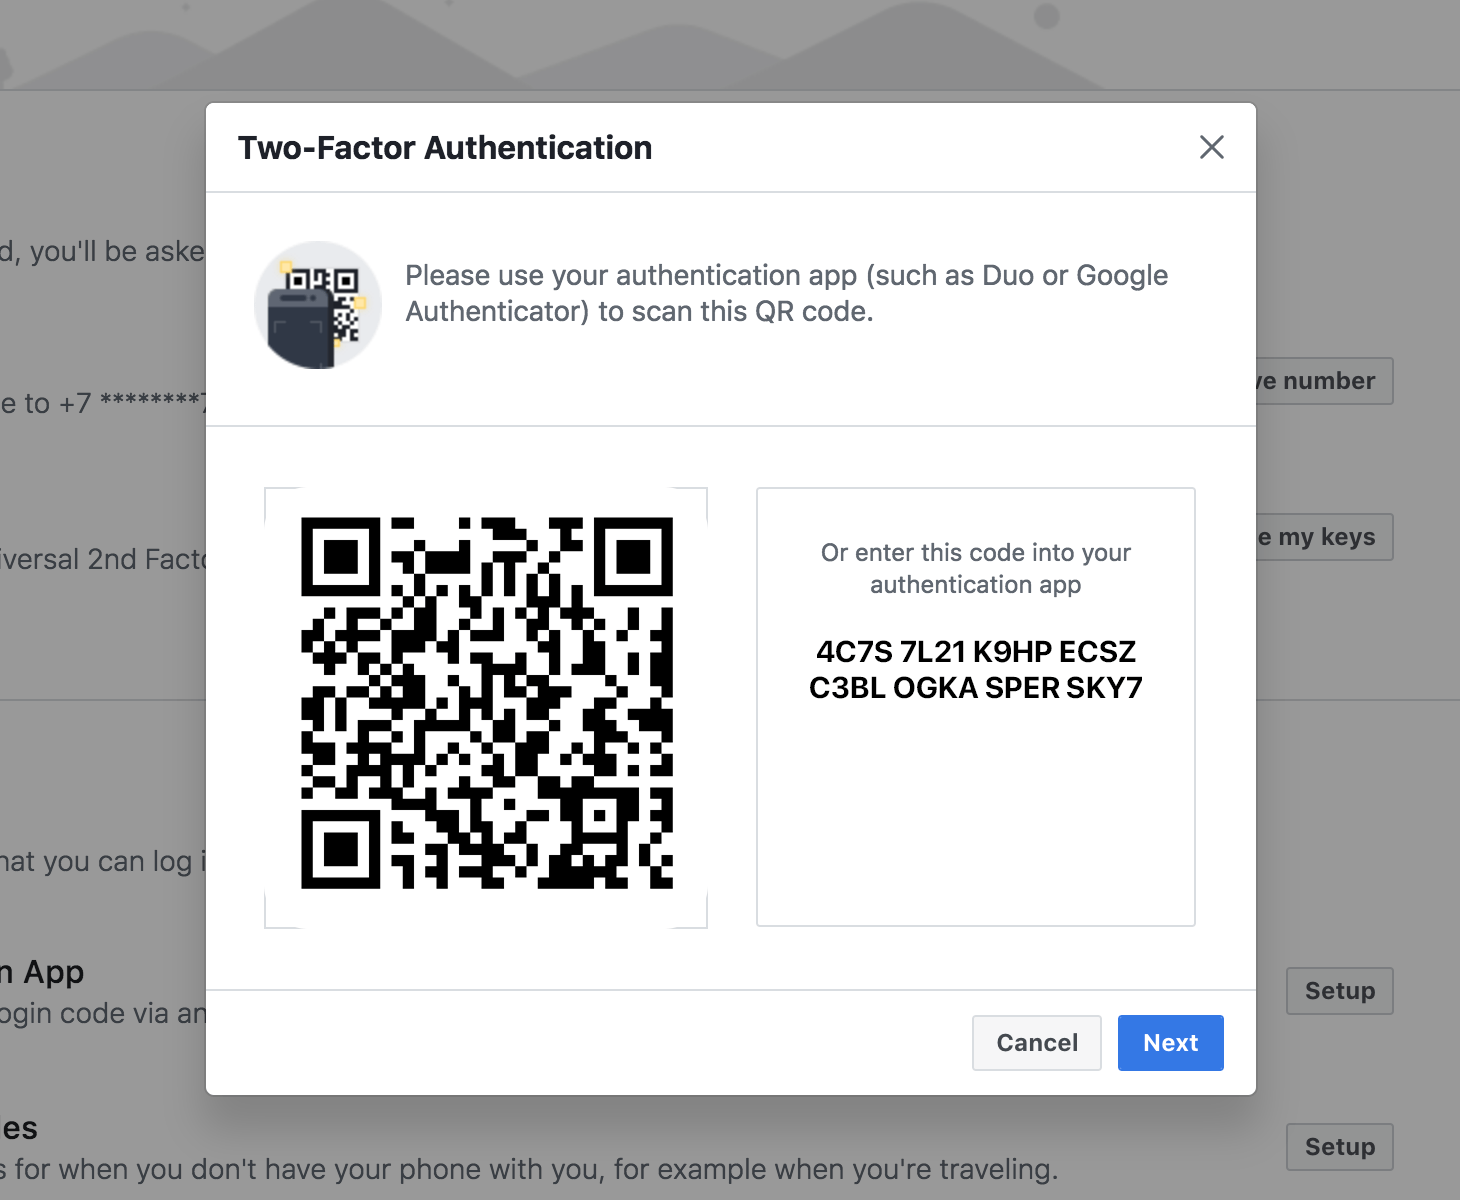 How to enable an authenticator app in Facebook